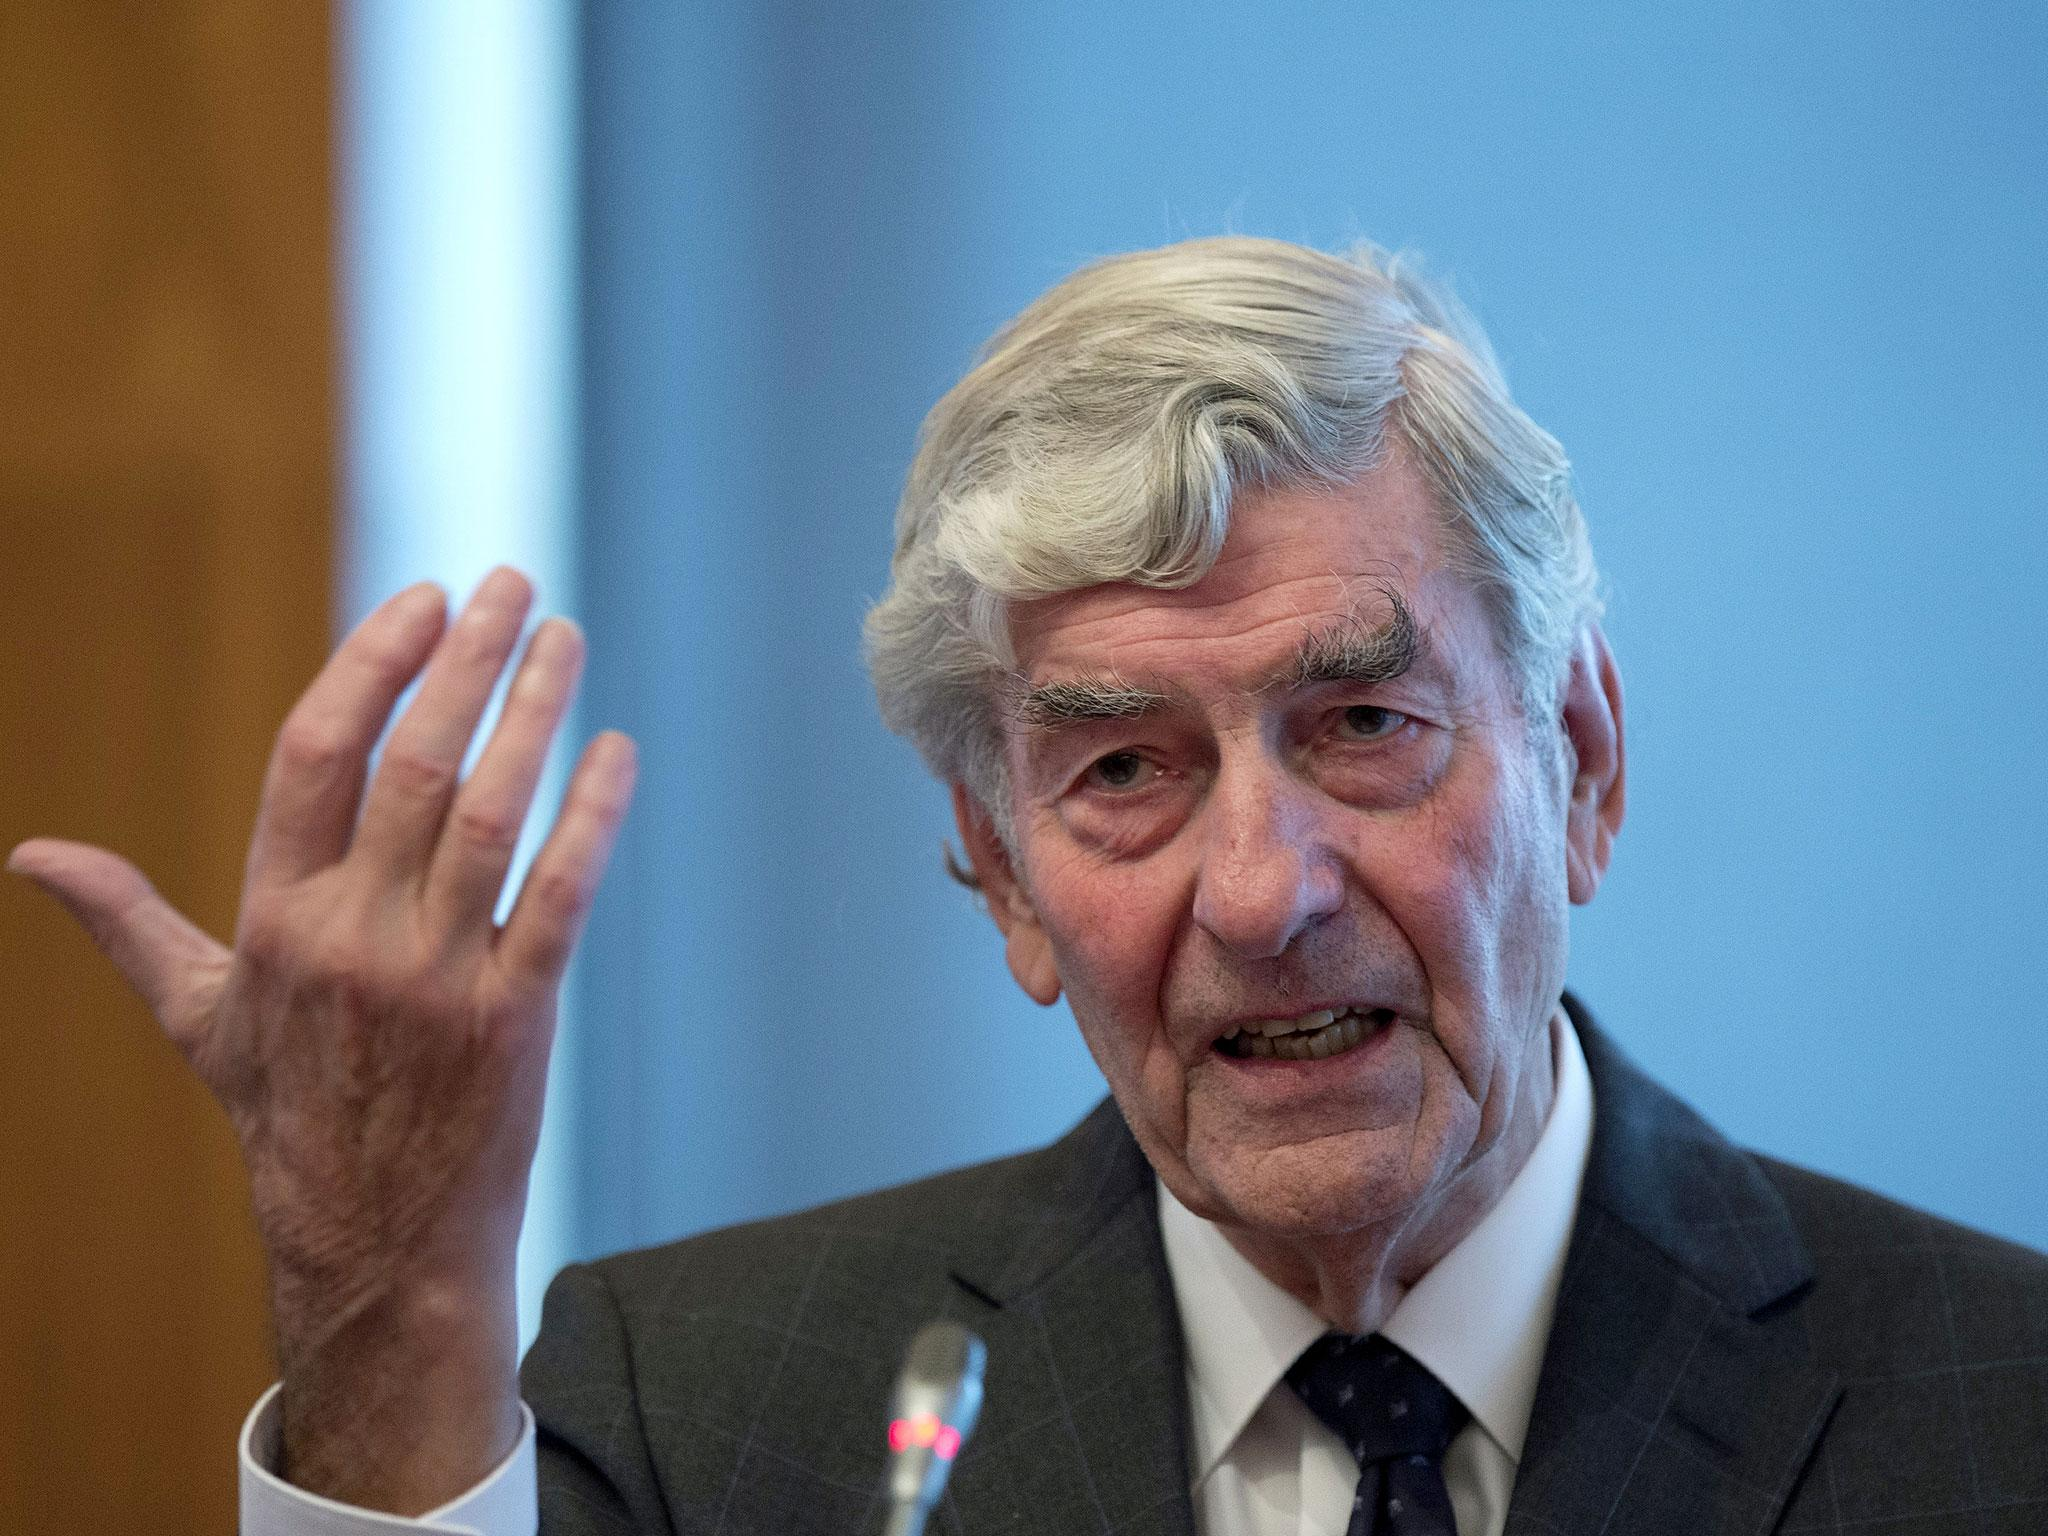 Ruud Lubbers dead: Long-serving former Dutch prime minister dies aged 78